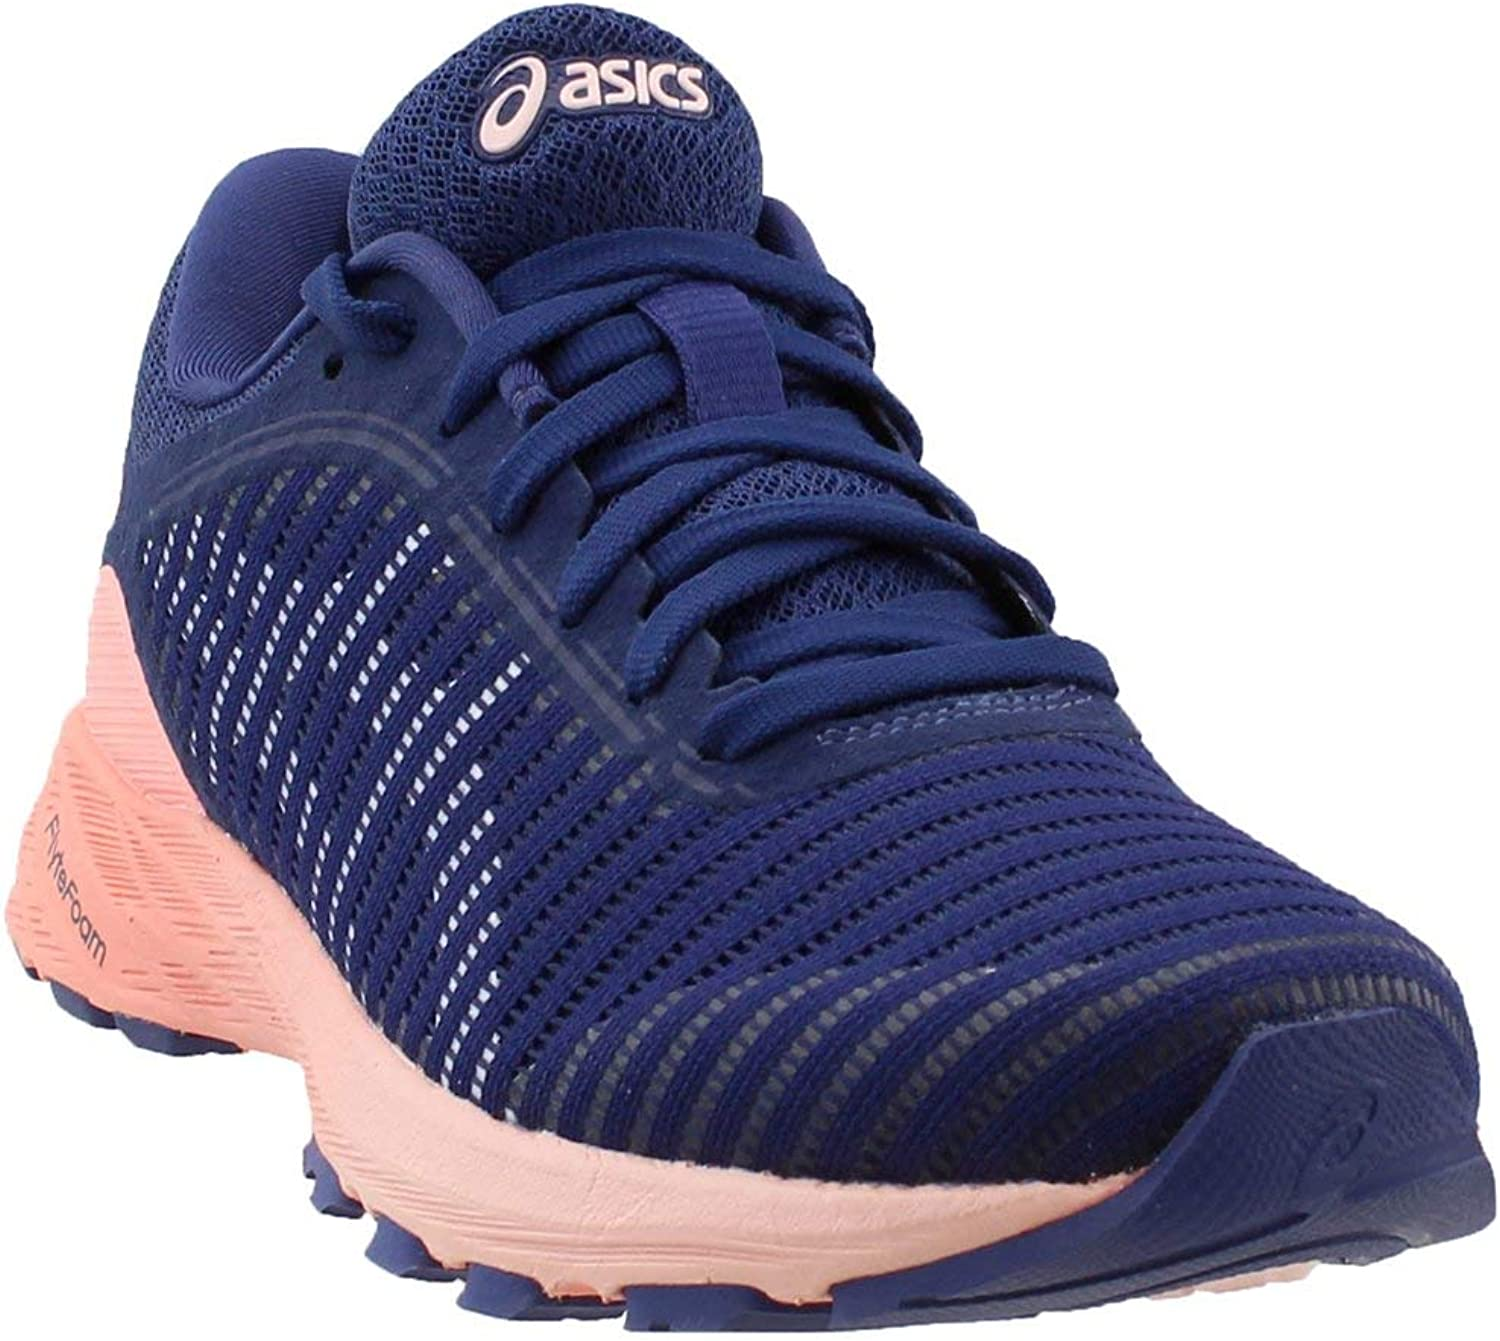 ASICS Dynaflyte 2 shoes Women's Running